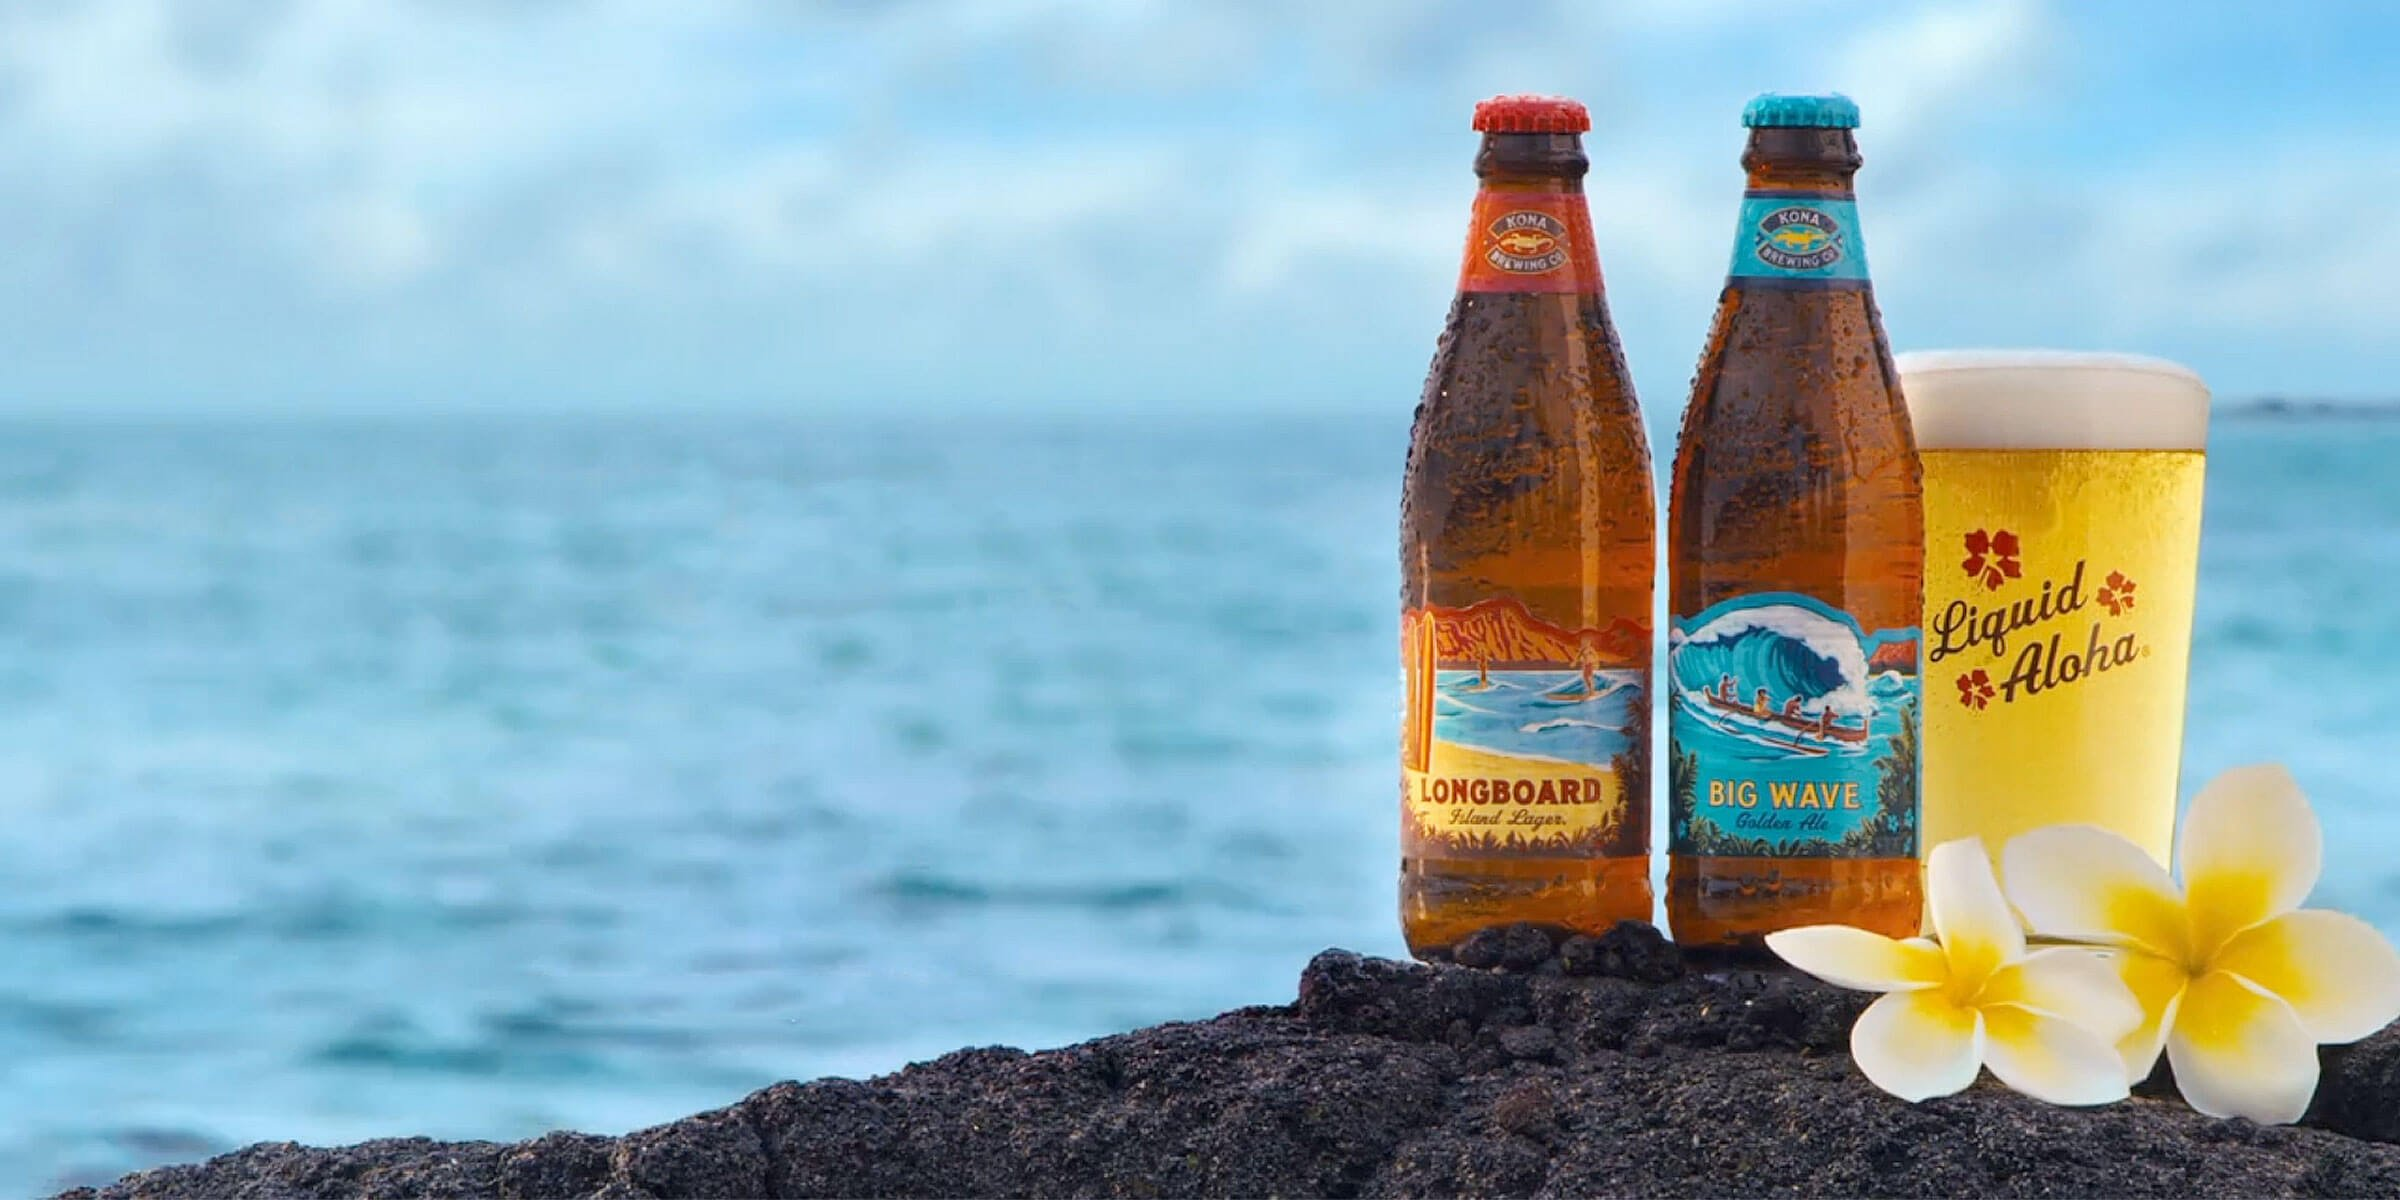 12 oz. bottles of the Longboard Island Lager and the Big Wave Golden Ale by Kona Brewing Co.